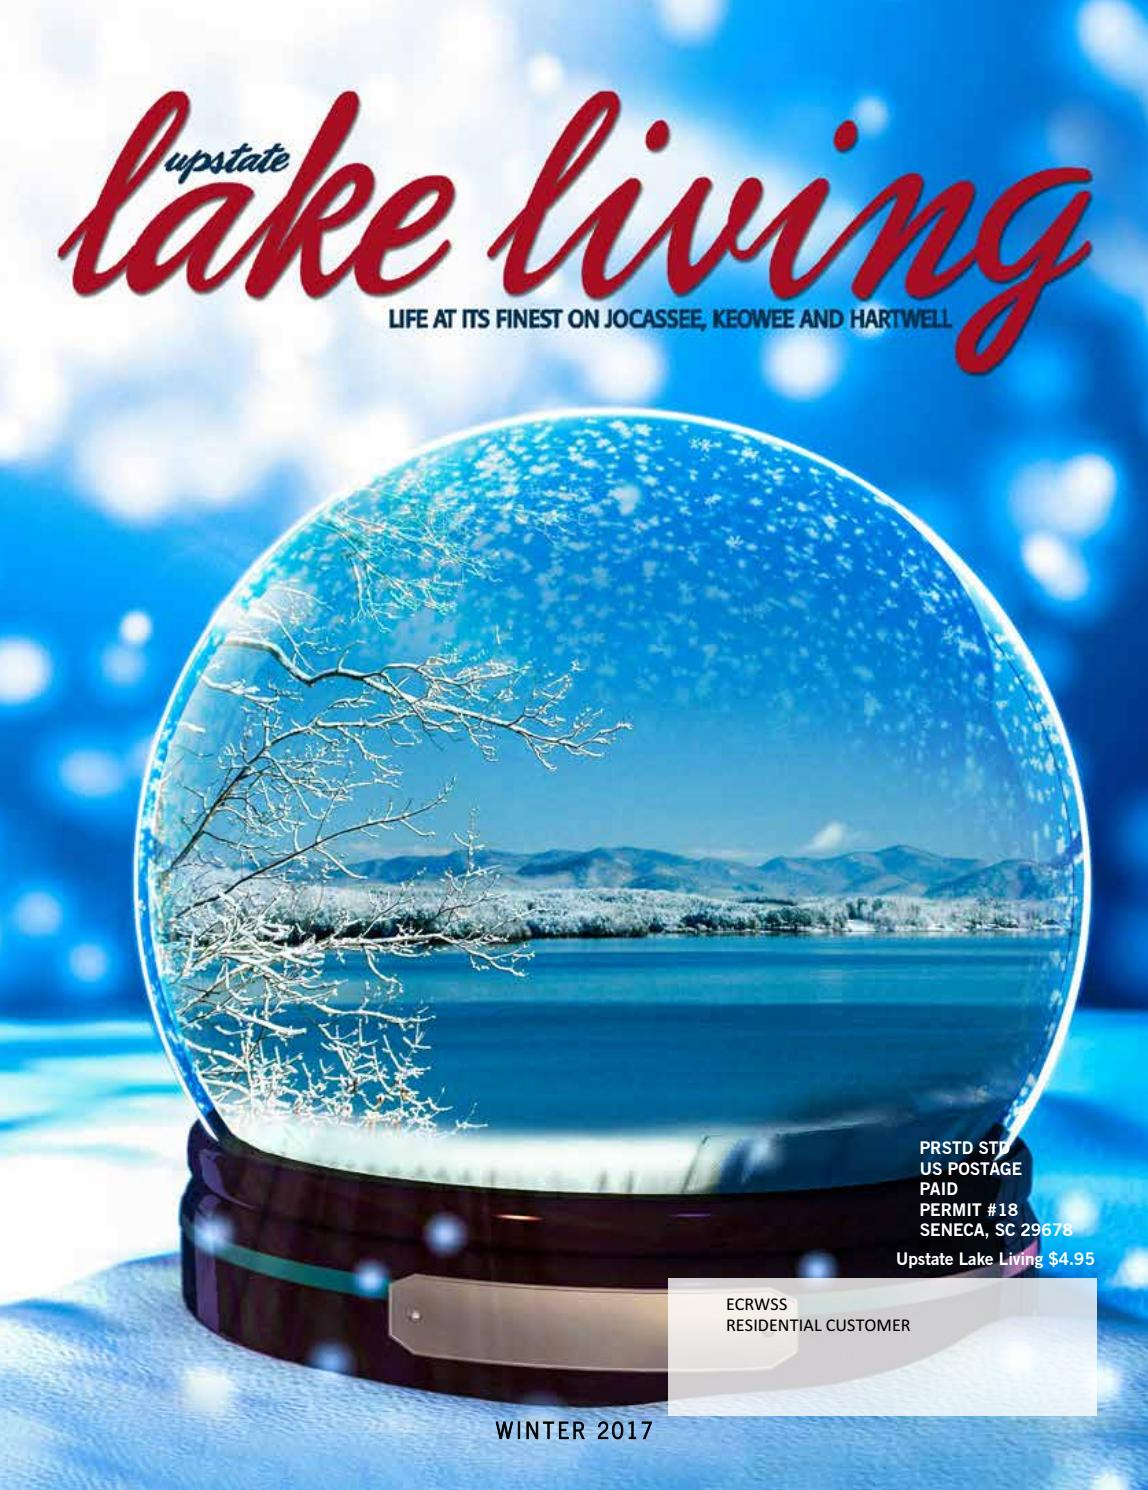 Upstate Lake Living Winter 2017 by EDWARDS PUBLICATIONS - issuu